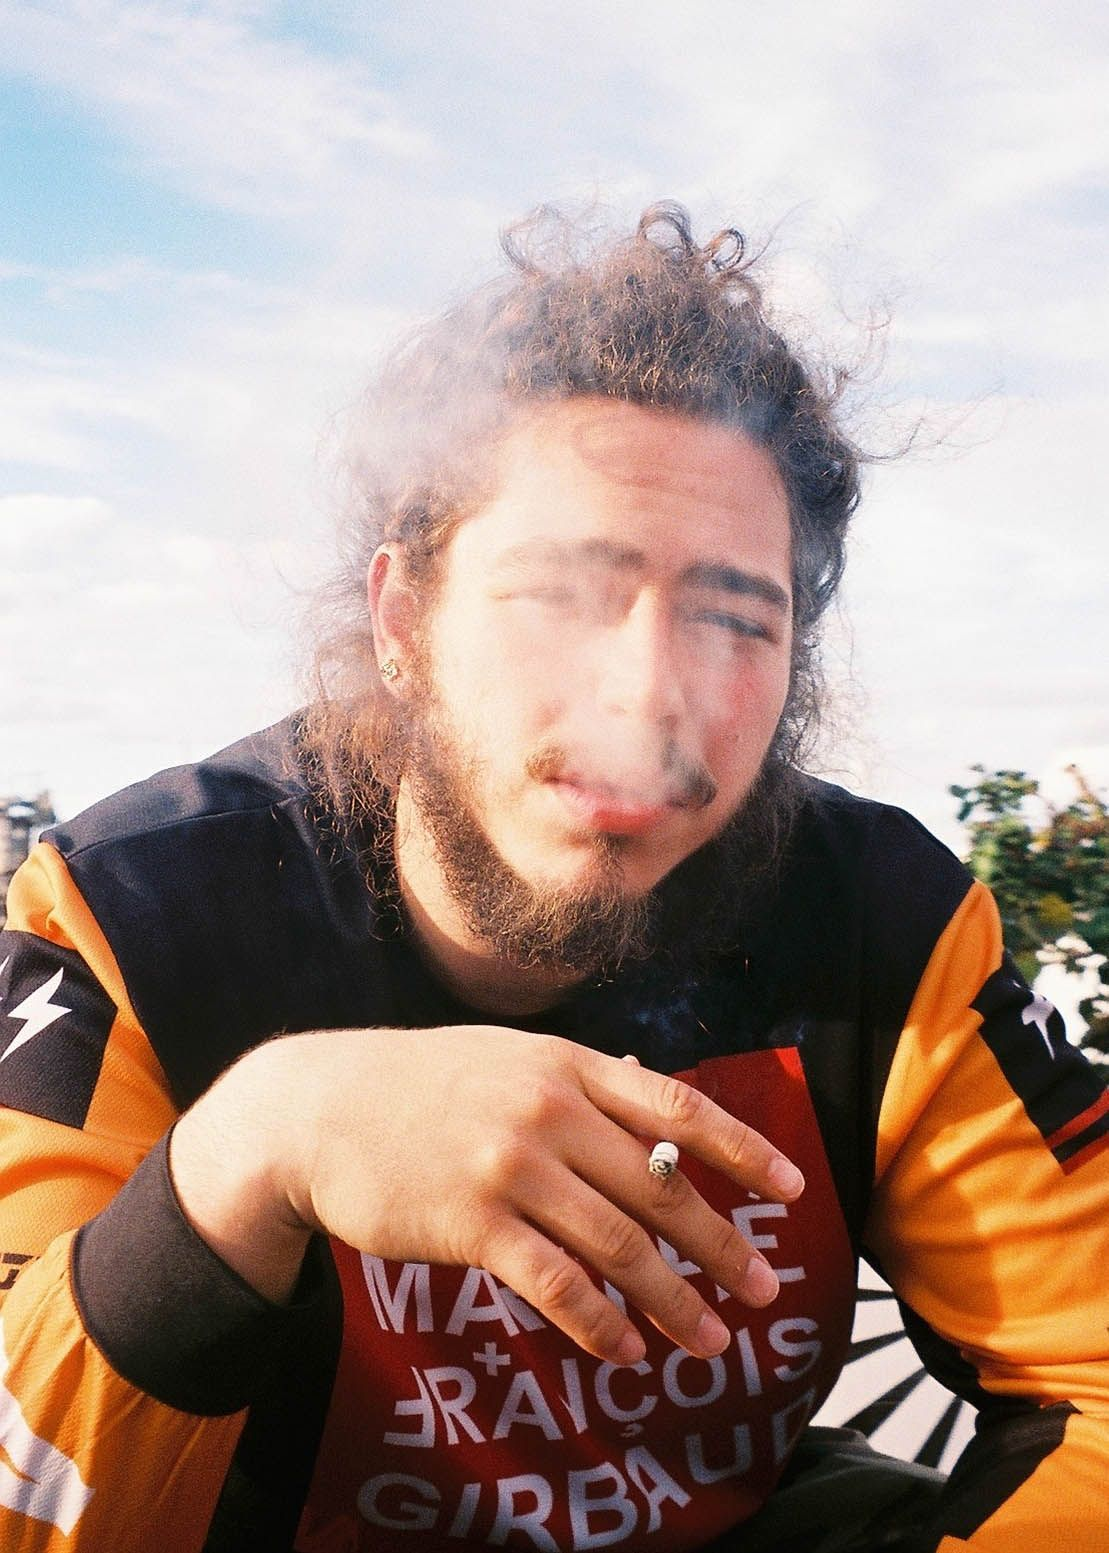 legend tunes Pinterest Post malone, Rapper and Singers